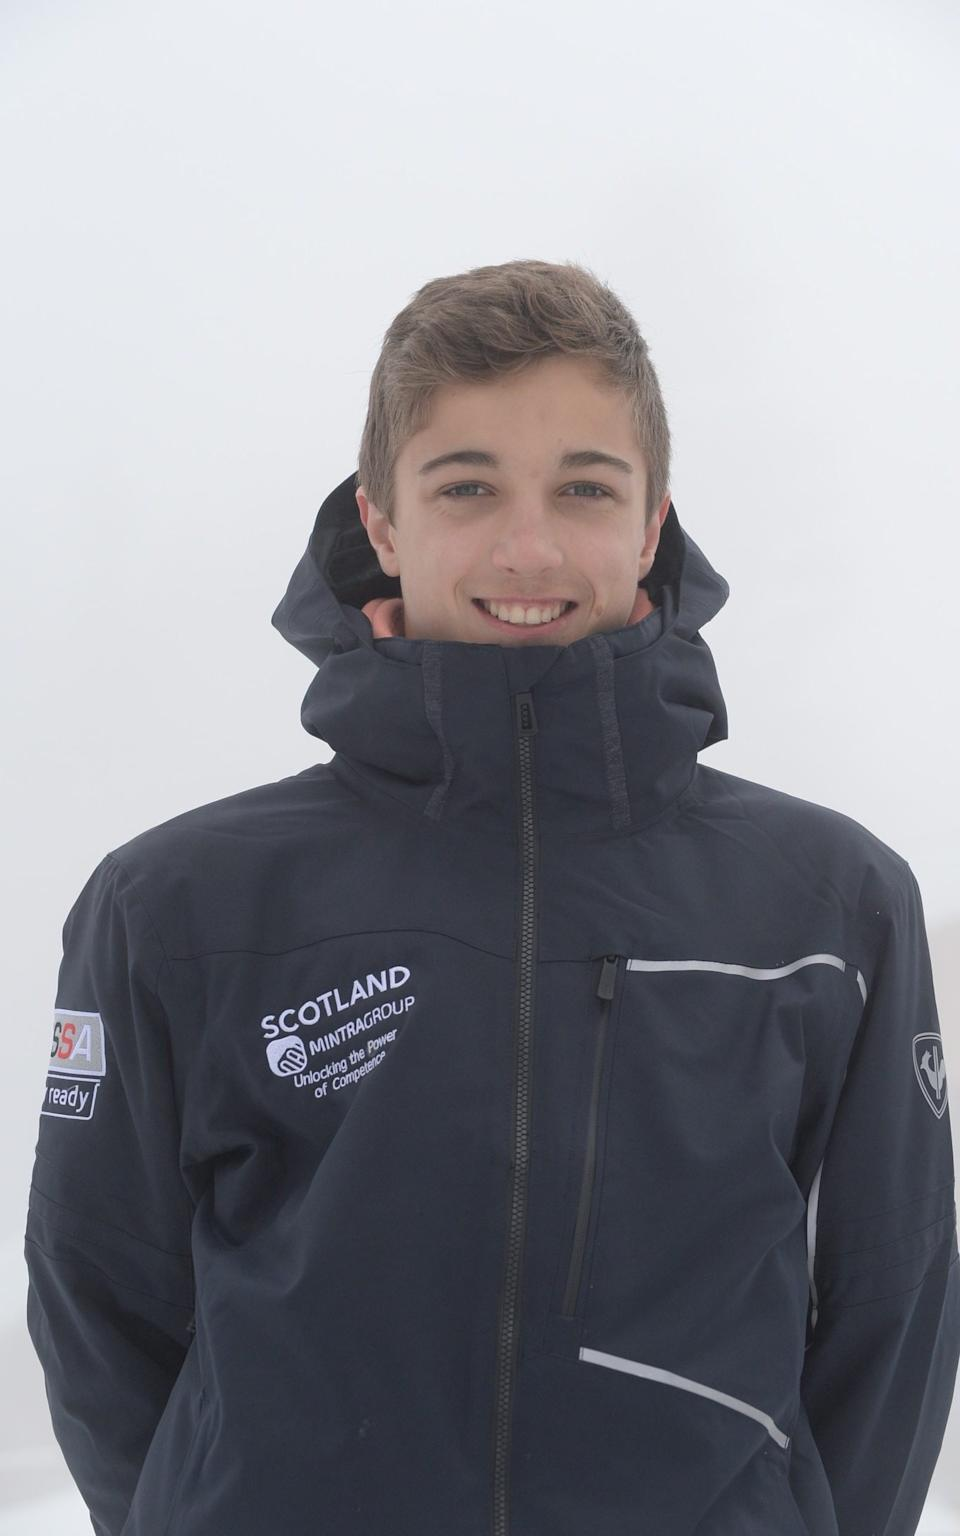 Jonny Marshall, who his father said had studied hard despite being part of the member of the Scottish Alpine Ski Team - Robert Marshall/submitted